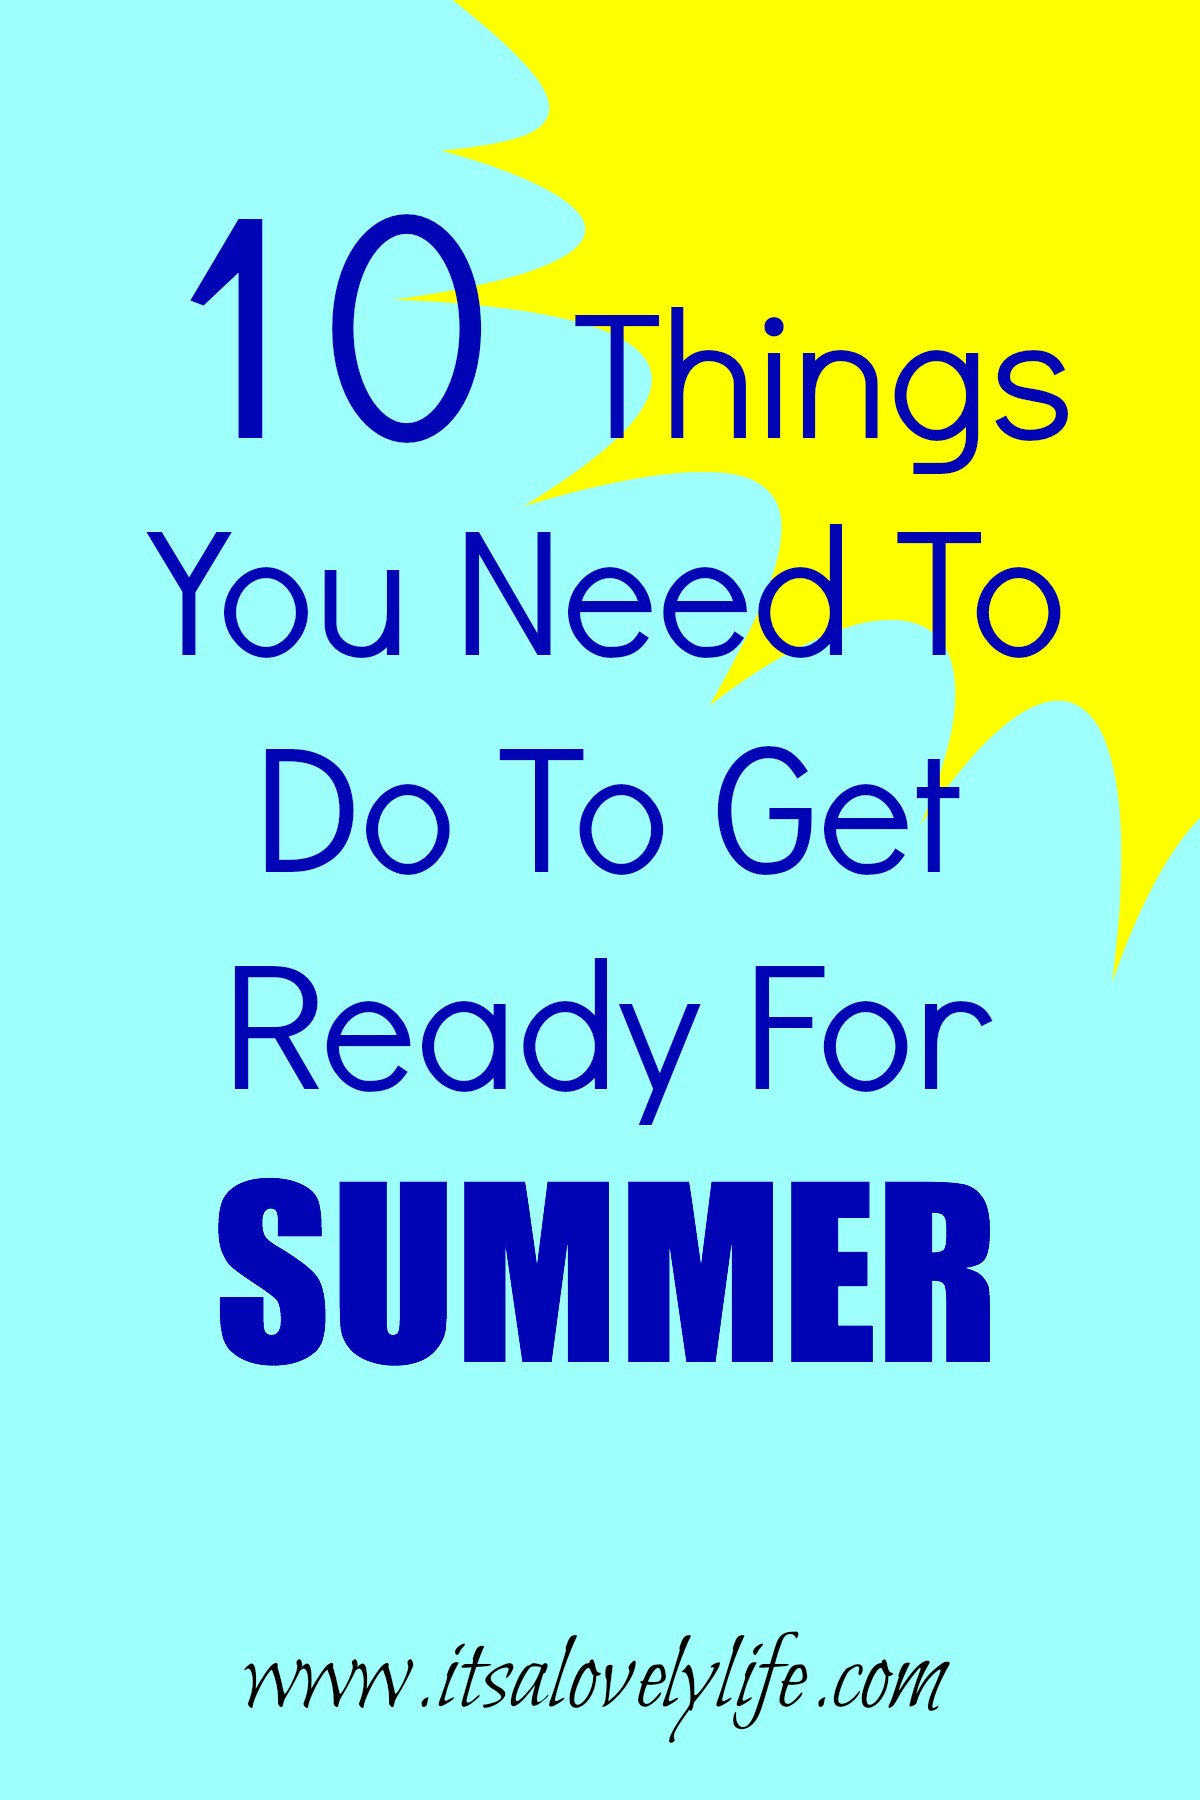 things you need to do to get ready for summer